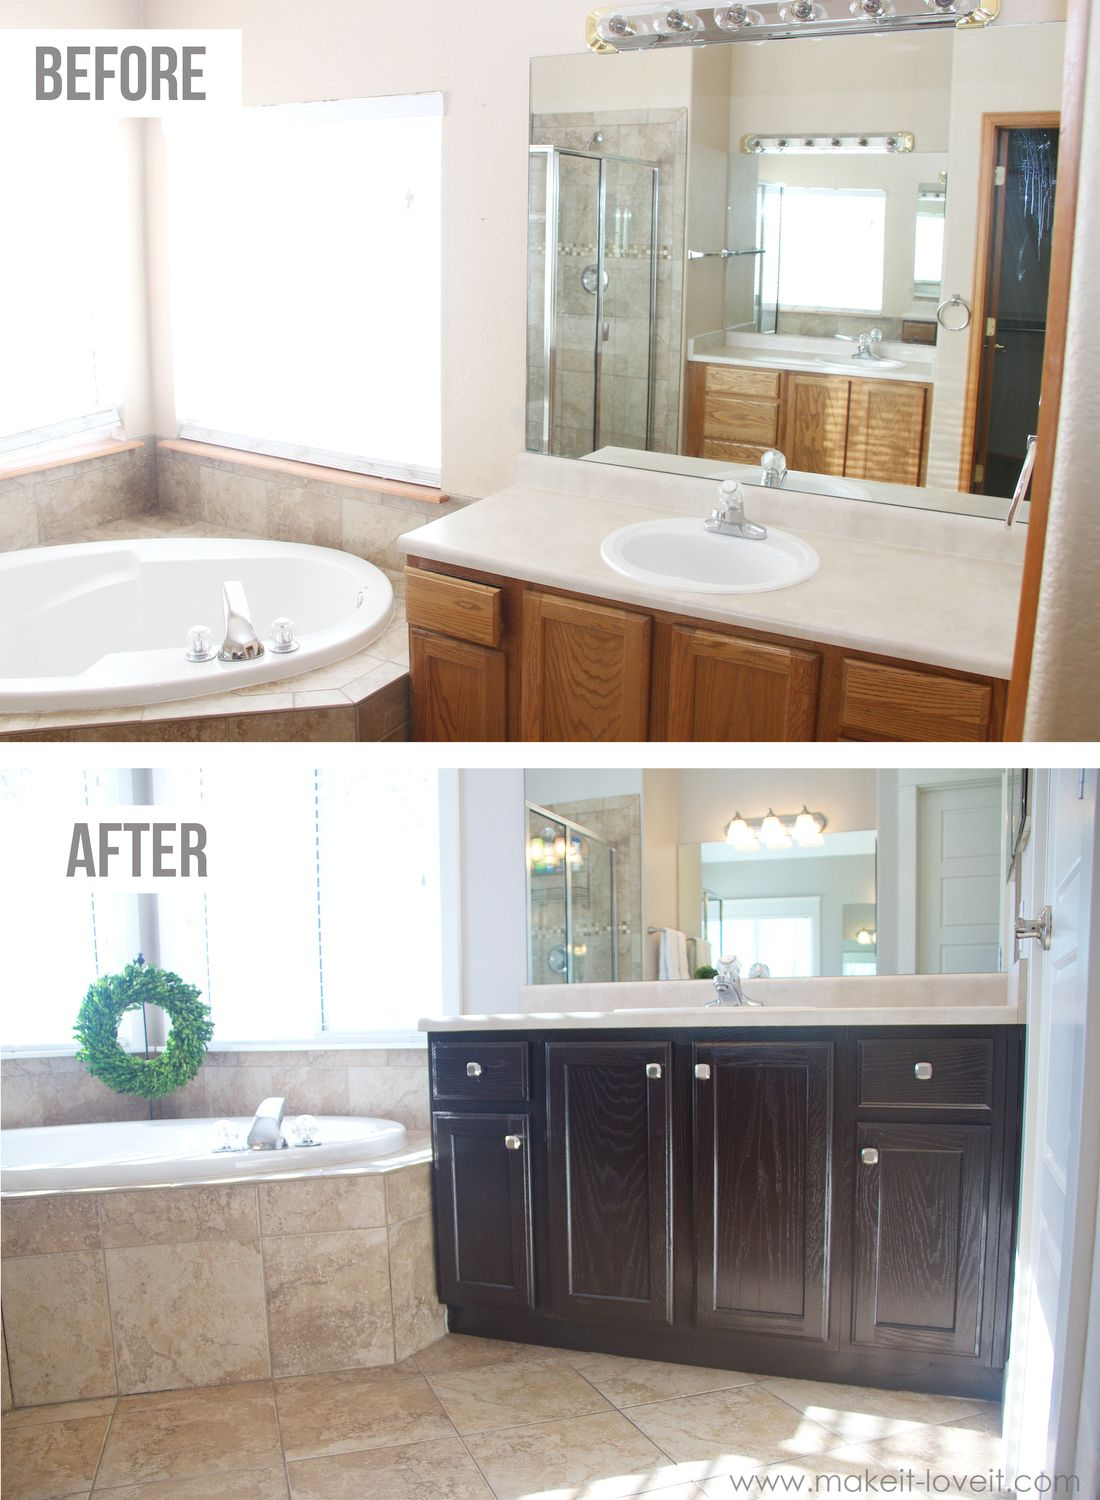 How You Can Stain Oak Kitchen Cabinets and Bathroom Vanities ...